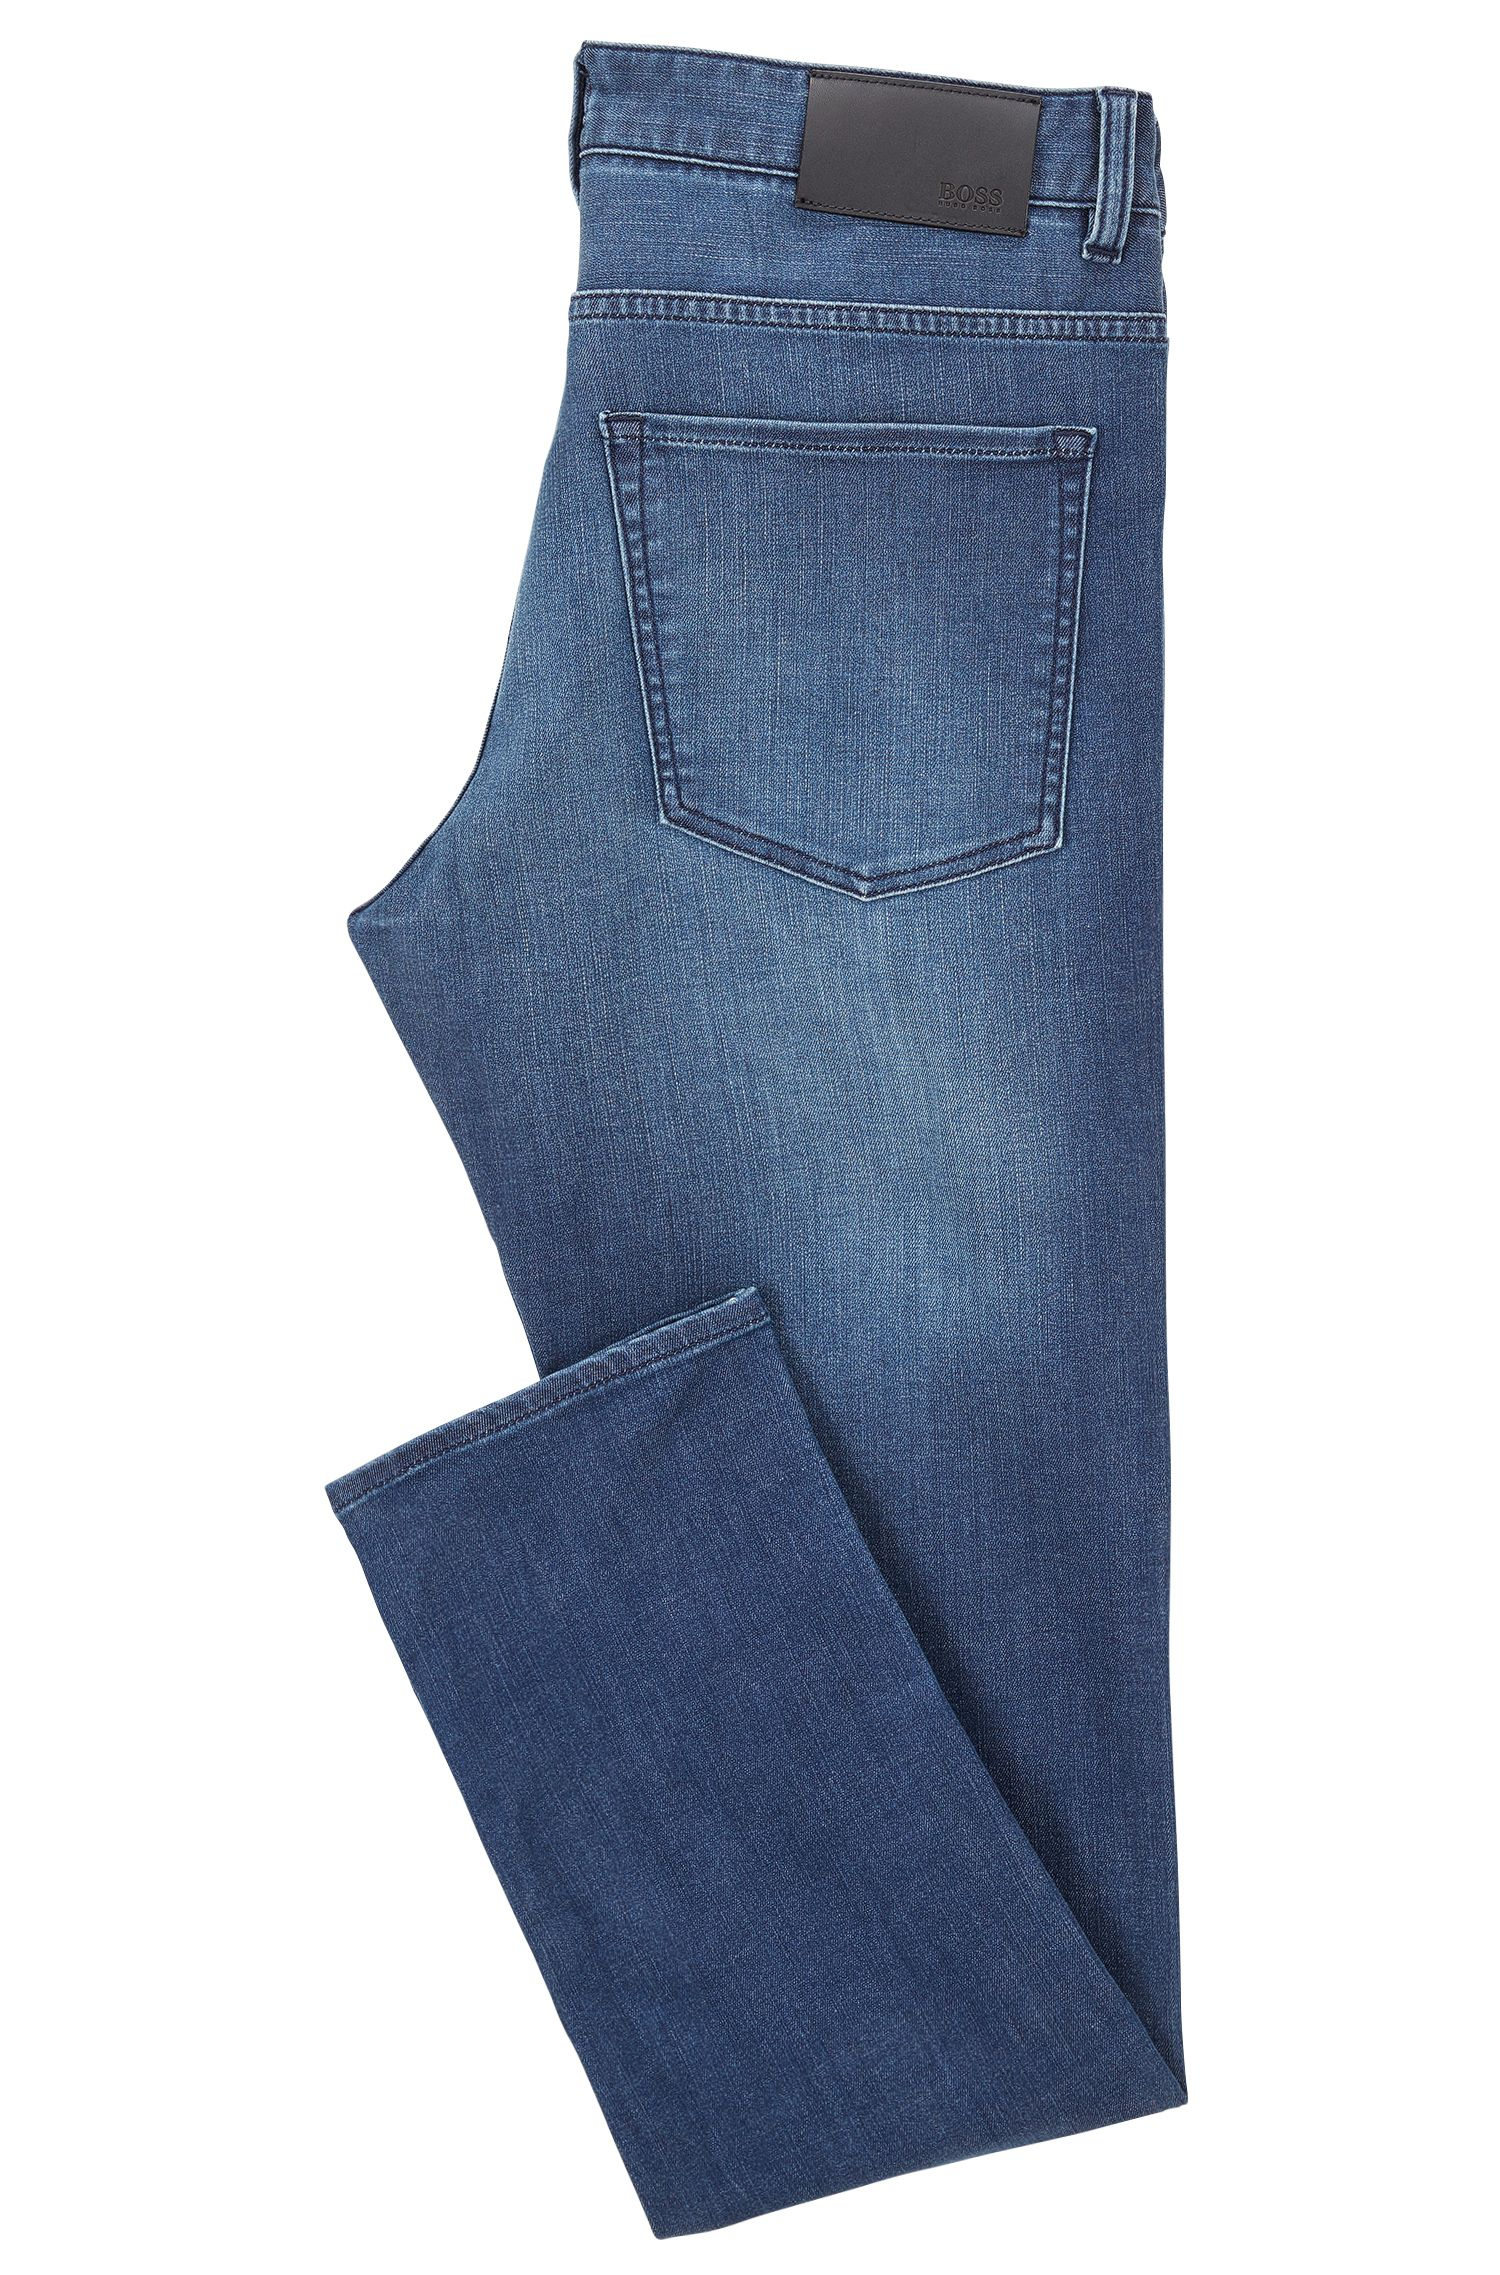 Cotton Blend Jean, Slim Fit | Delaware